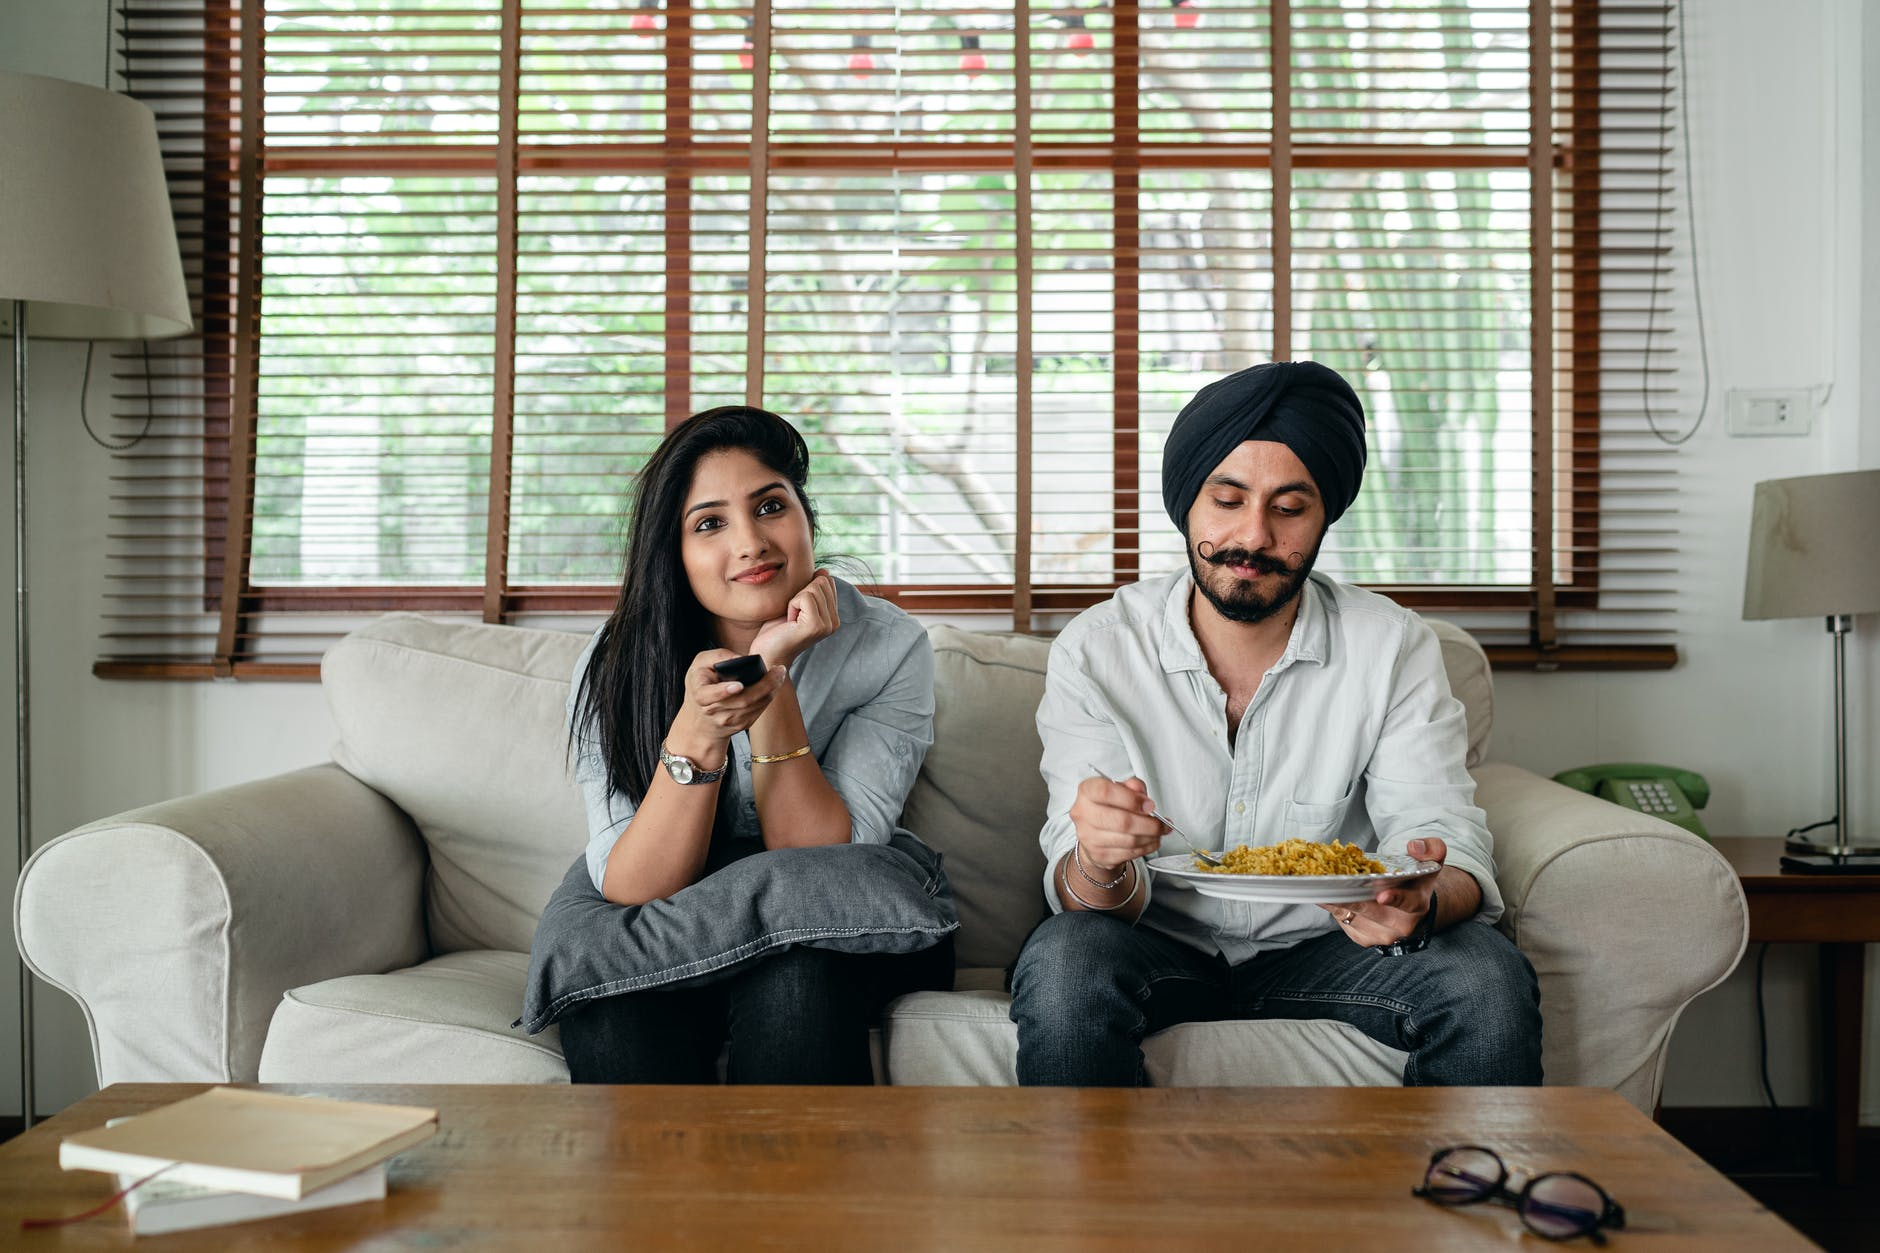 calm ethnic couple watching movie on sofa